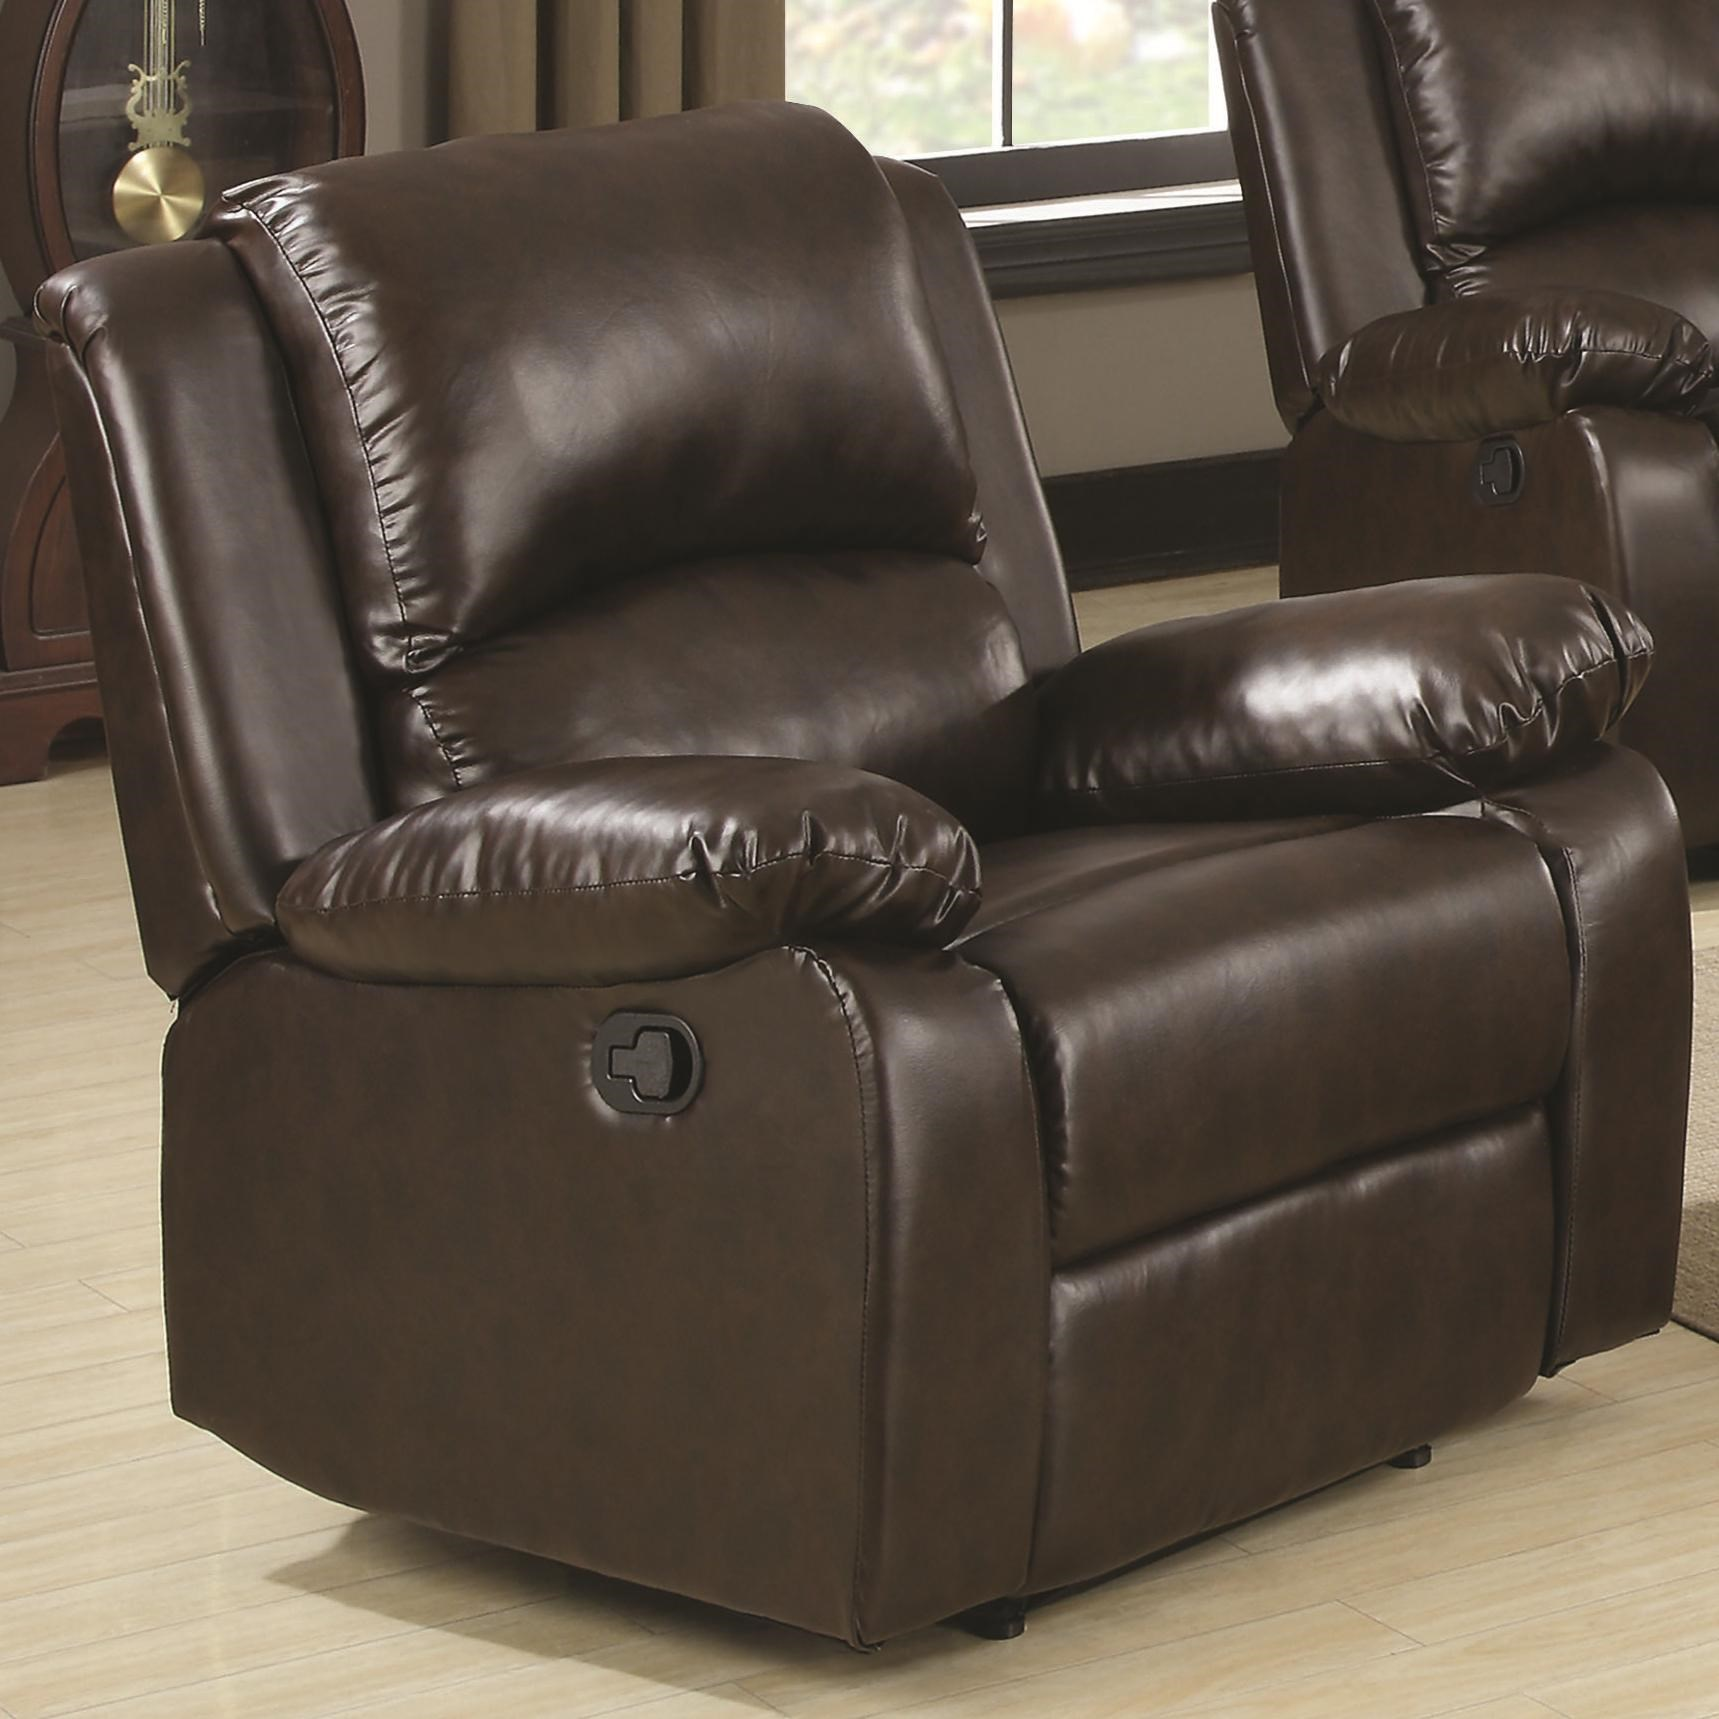 Recliner Pillow Boston Casual Recliner With Pillow Arms By Coaster At Value City Furniture